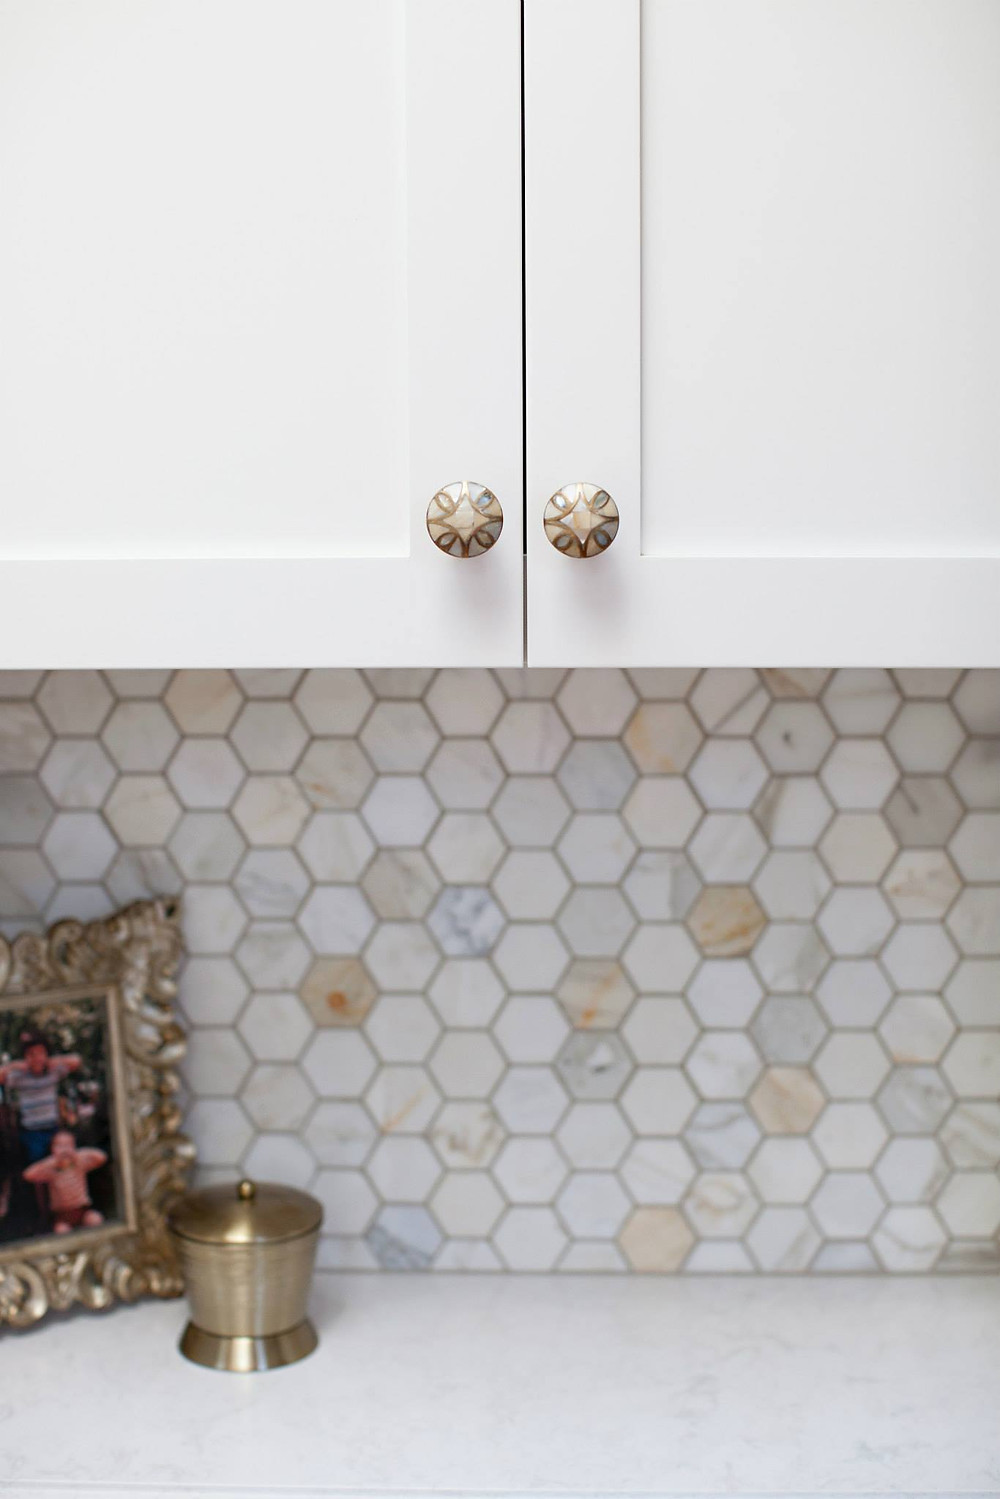 Hardware details:  knobs by Anthropologie